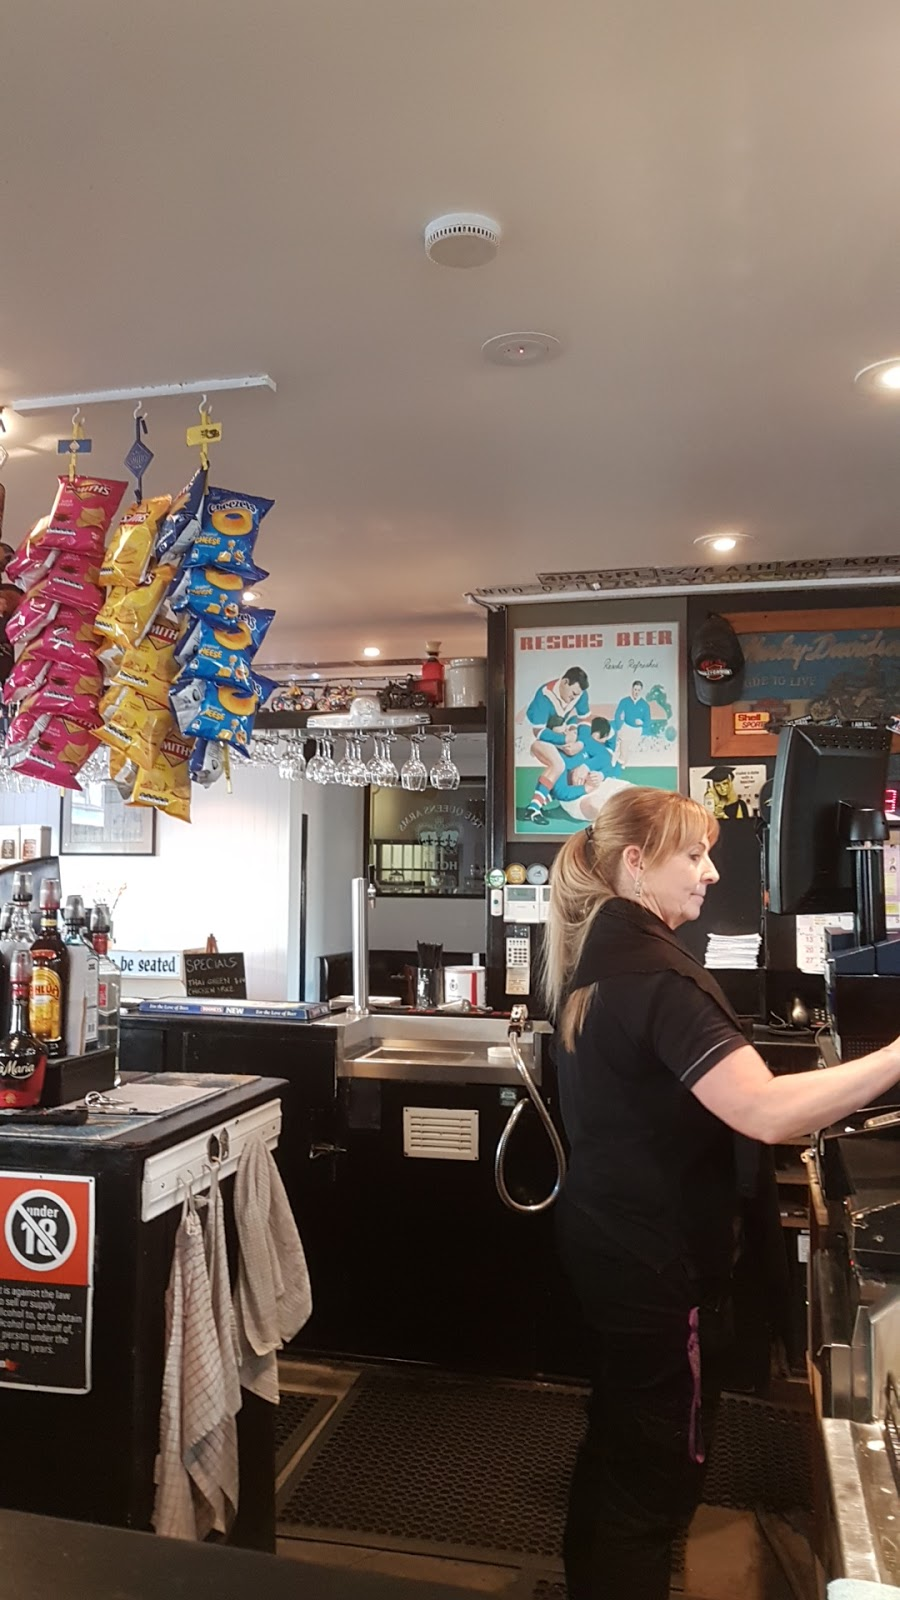 Queens Arms Hotel | lodging | 1/245 High St, Maitland NSW 2320, Australia | 0249345097 OR +61 2 4934 5097